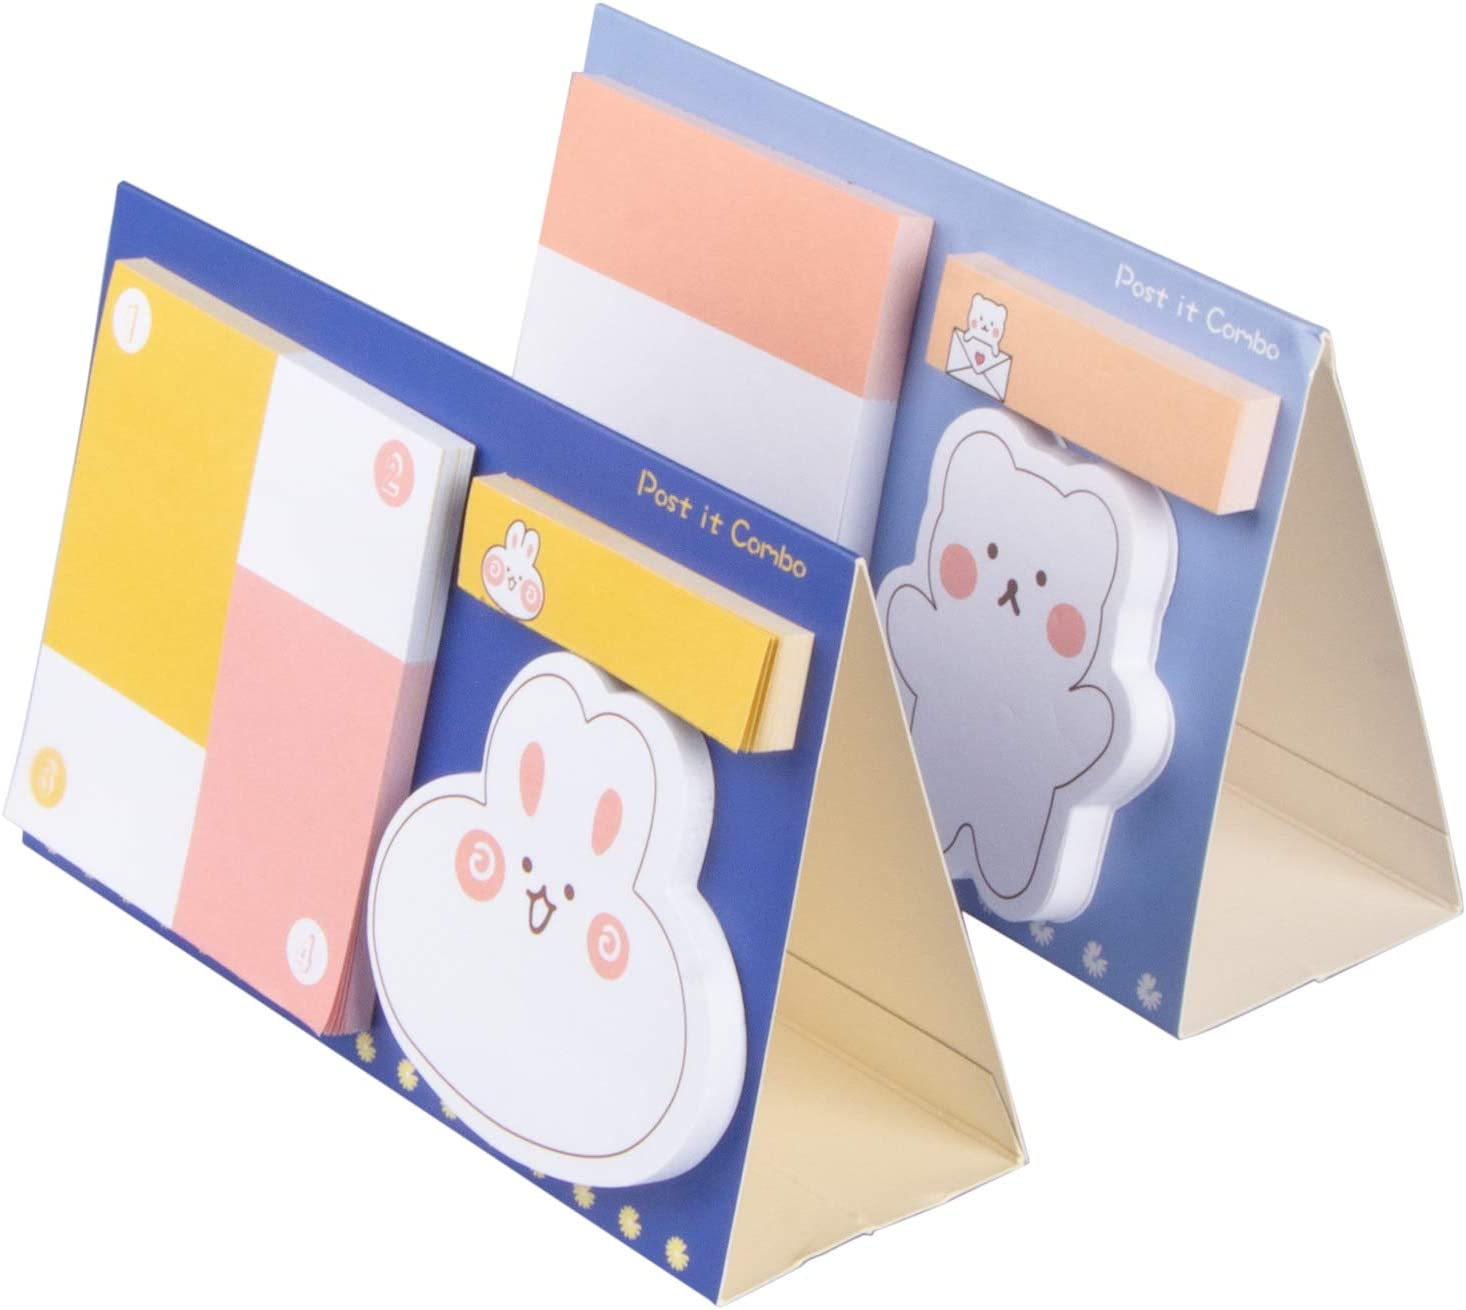 Aobopar 2 Pack Cute Animal Cartoon Sticky Notes, 300PCS Self-Stick Memo Pads, Notes for School Home and Office Use, Funny Book Page Markers and Index Tabs (A+C)